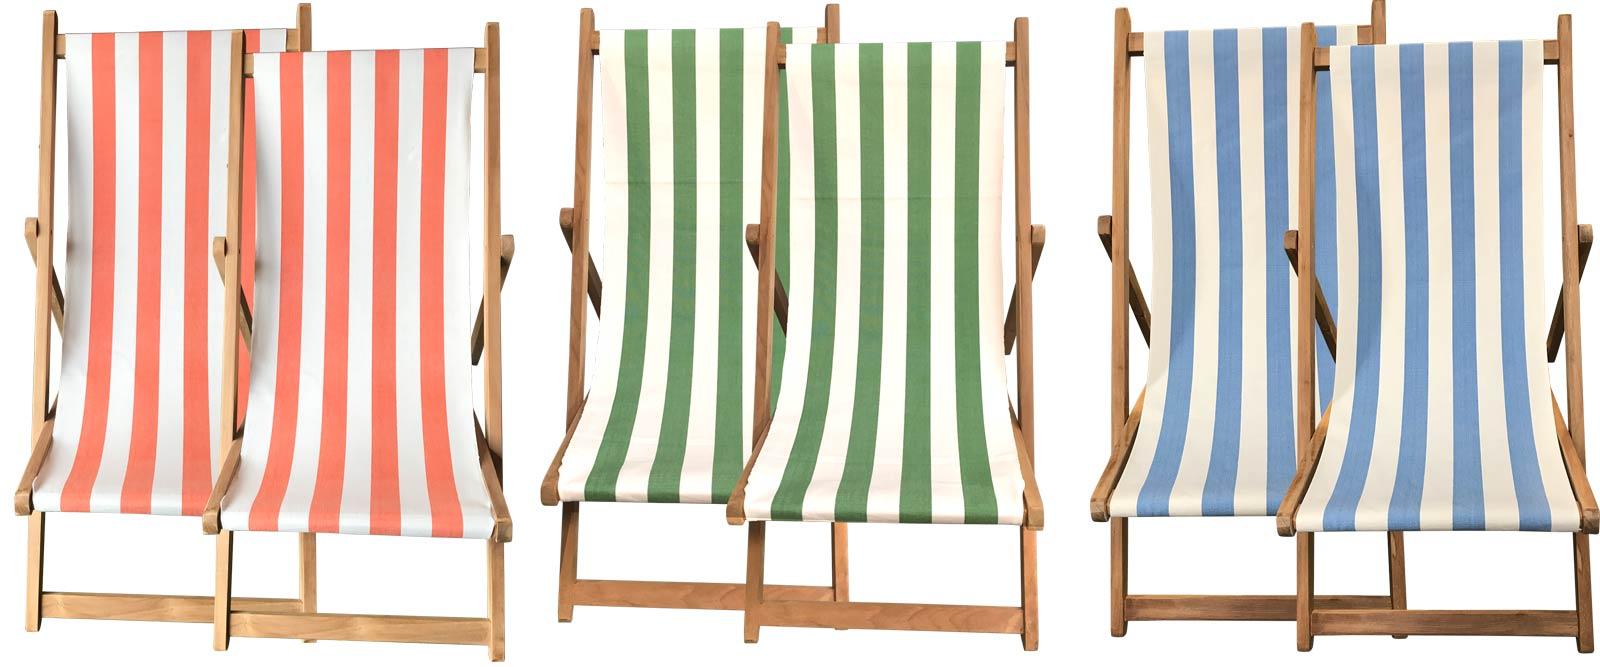 Buy a Pair of Deck Chairs from The Stripes Company USA